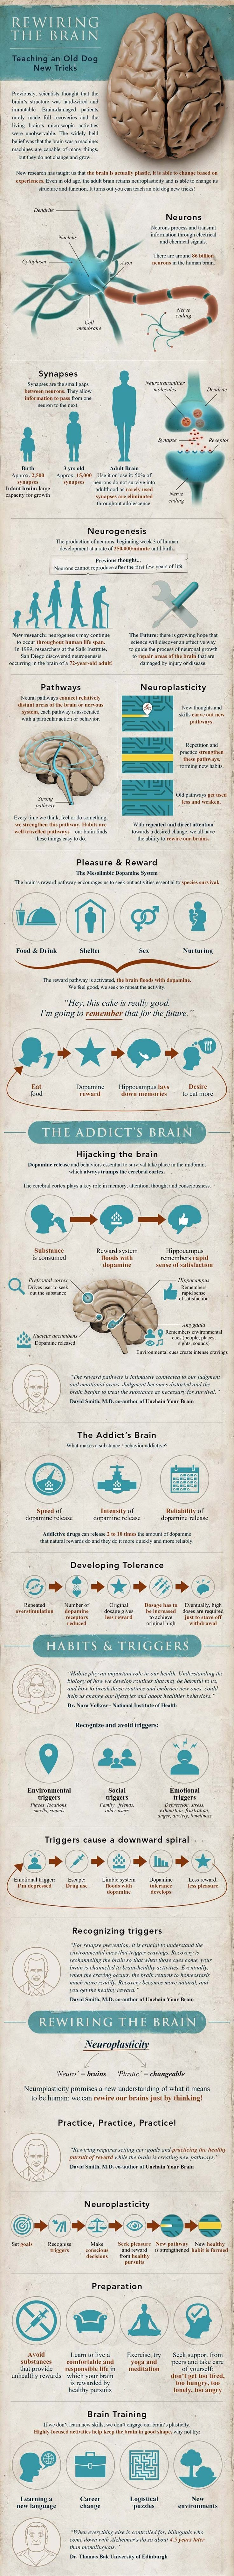 best 25 neuroscience ideas on pinterest brain science